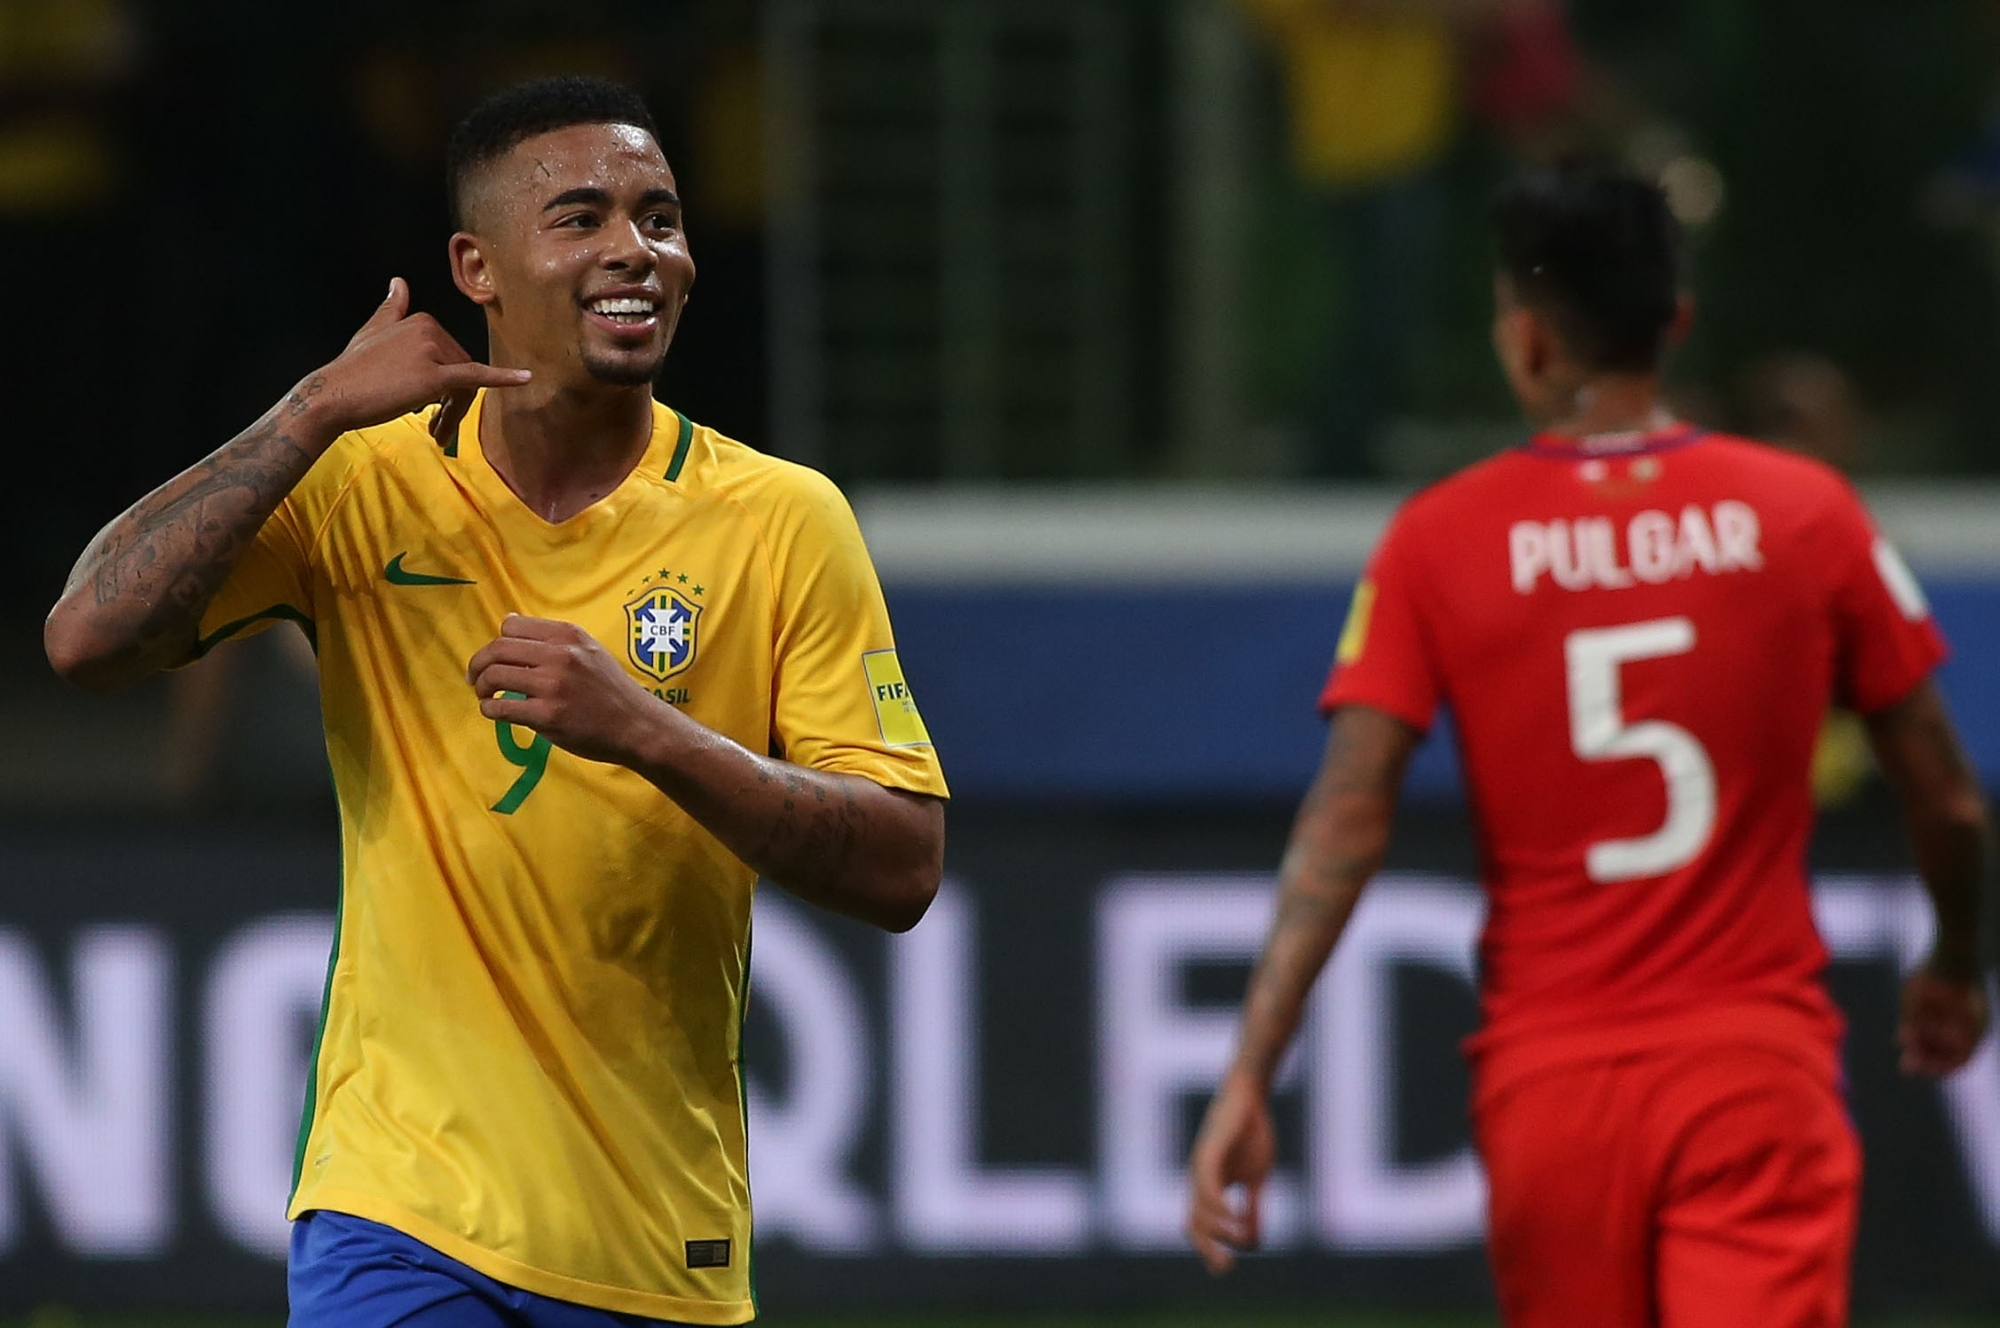 Brazil football team striker Gabriel Jesus during FIFA World Cup qualifiers